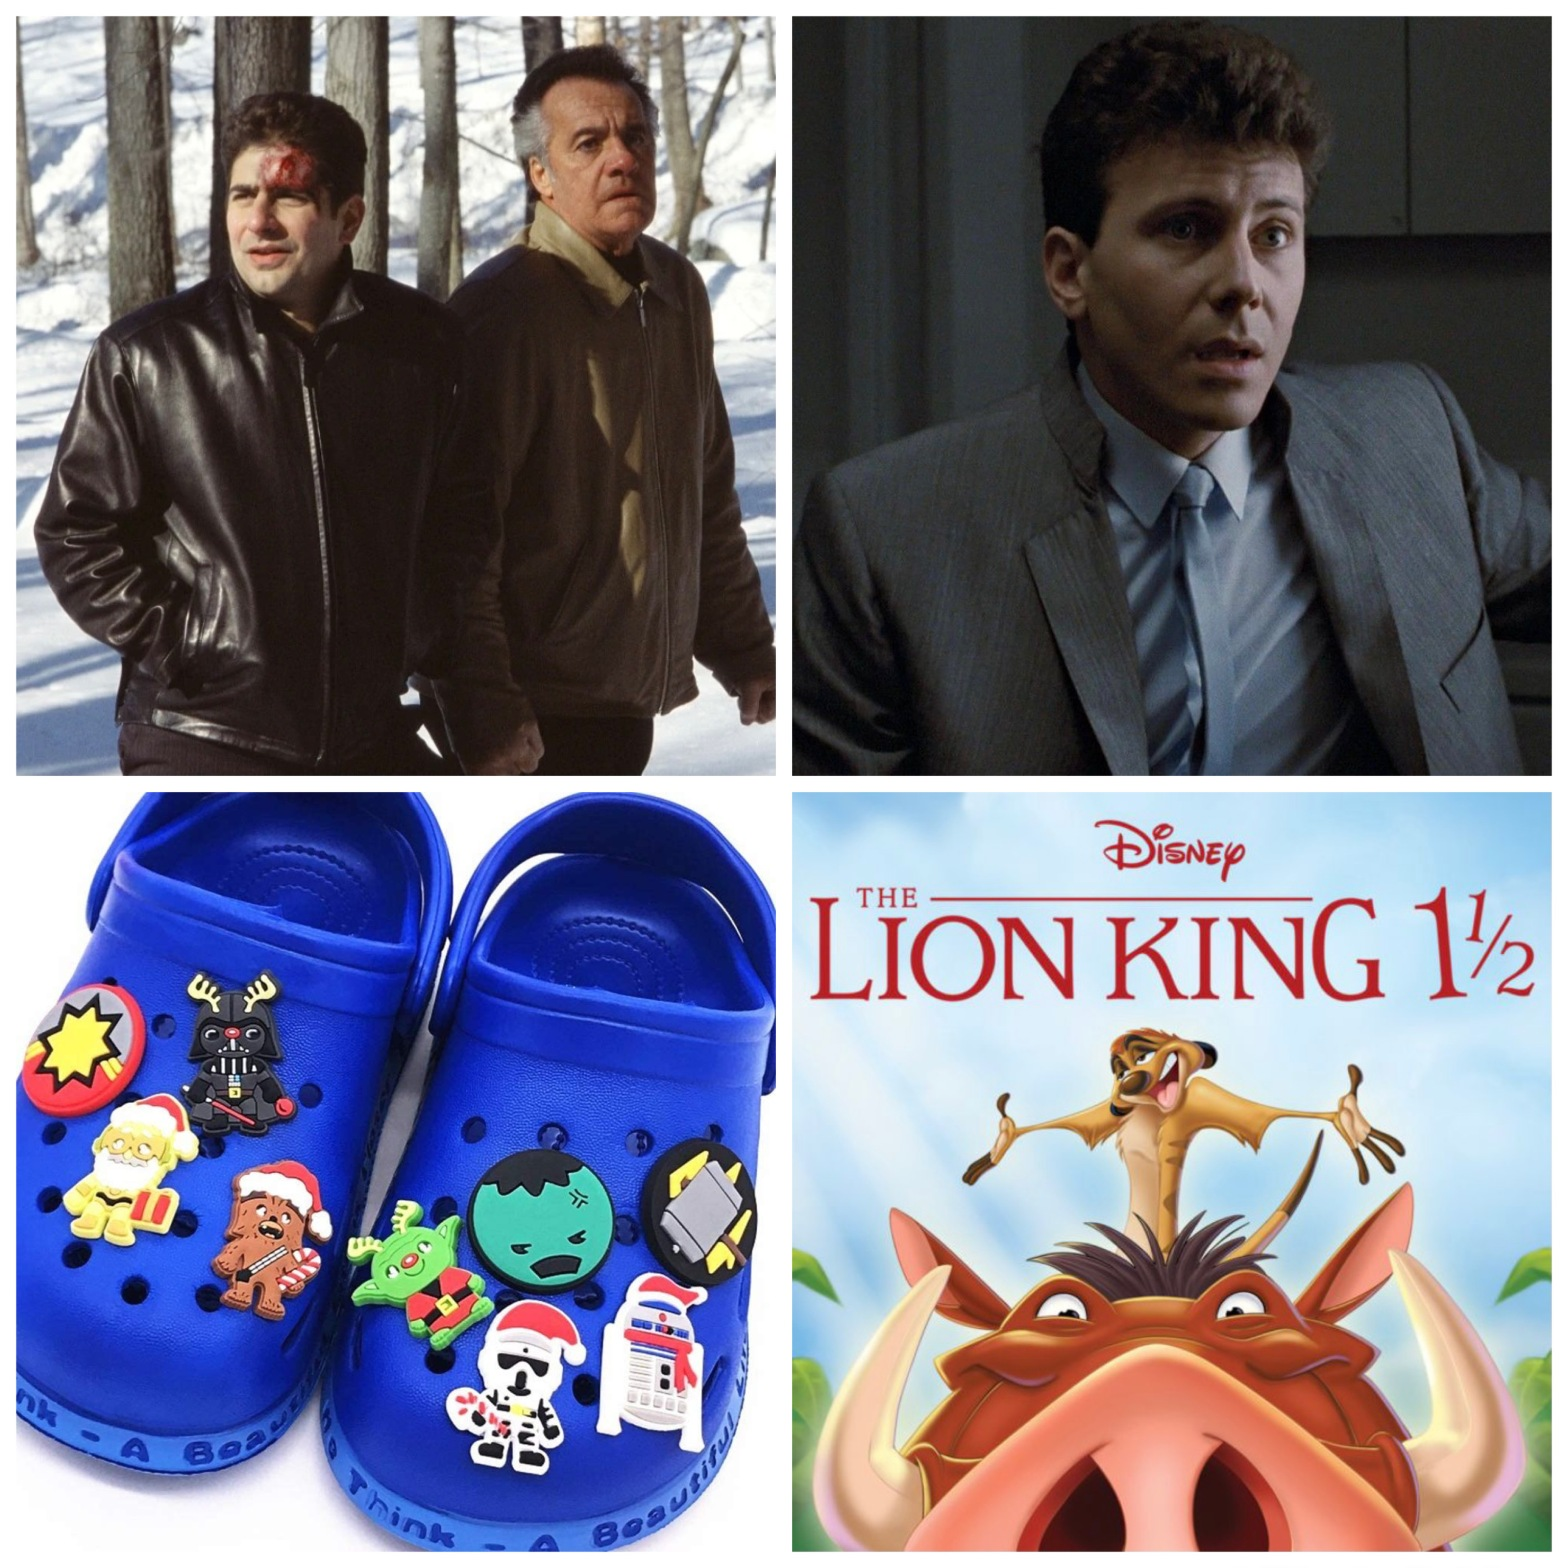 The Sopranos episode Pine Barrens, Paul Resier in Aliens, Croc Charms, and The Lion King 1 1/2.